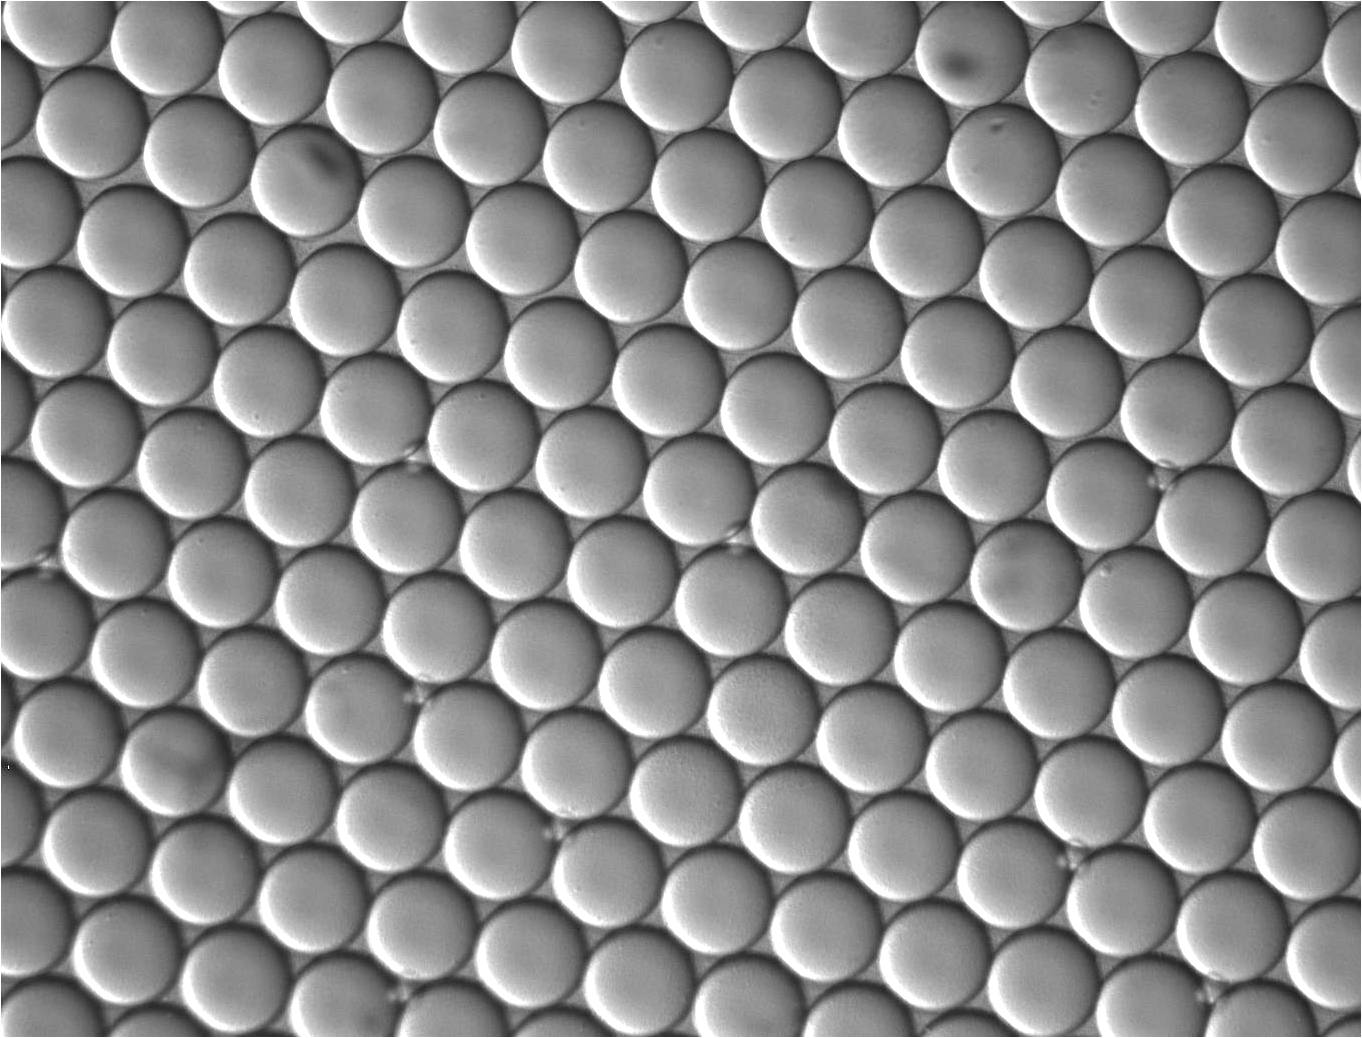 Hexagonally-packed microdroplets